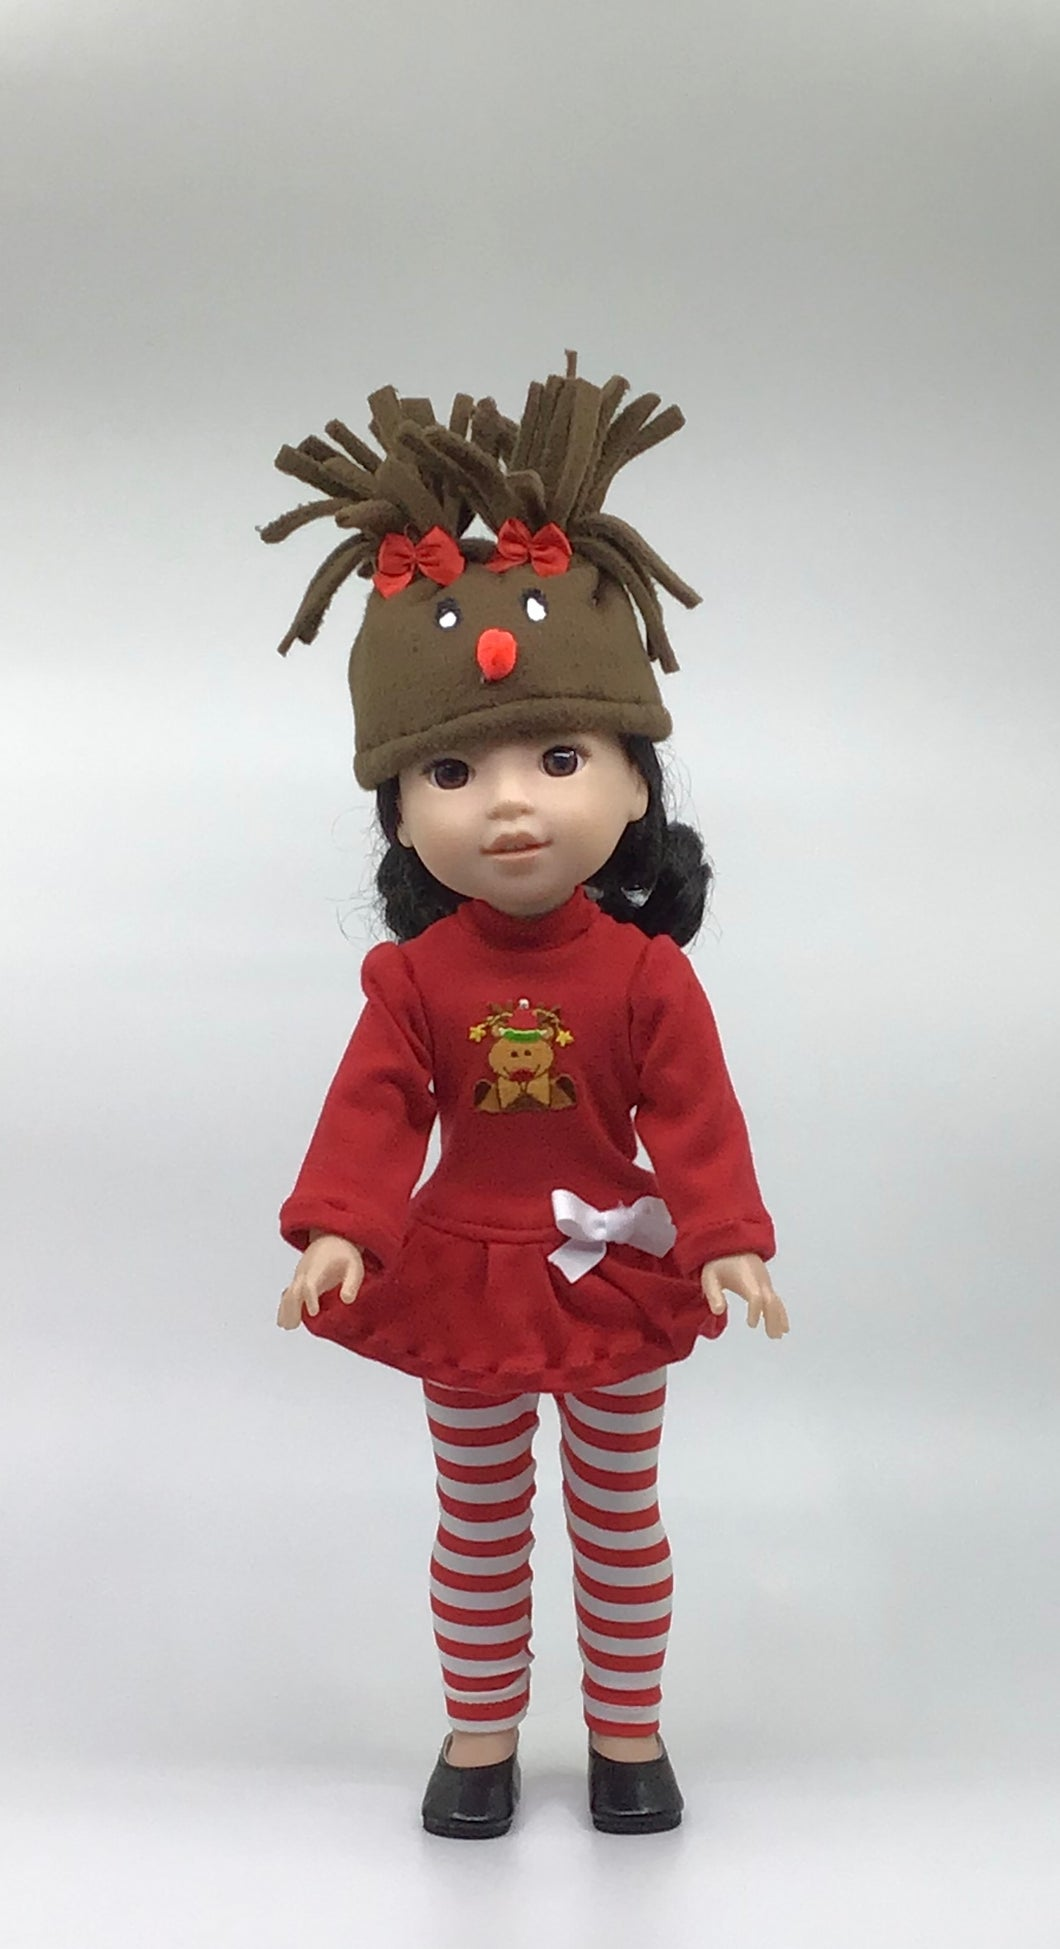 Wellie Reindeer Leggings Doll Outfit Set